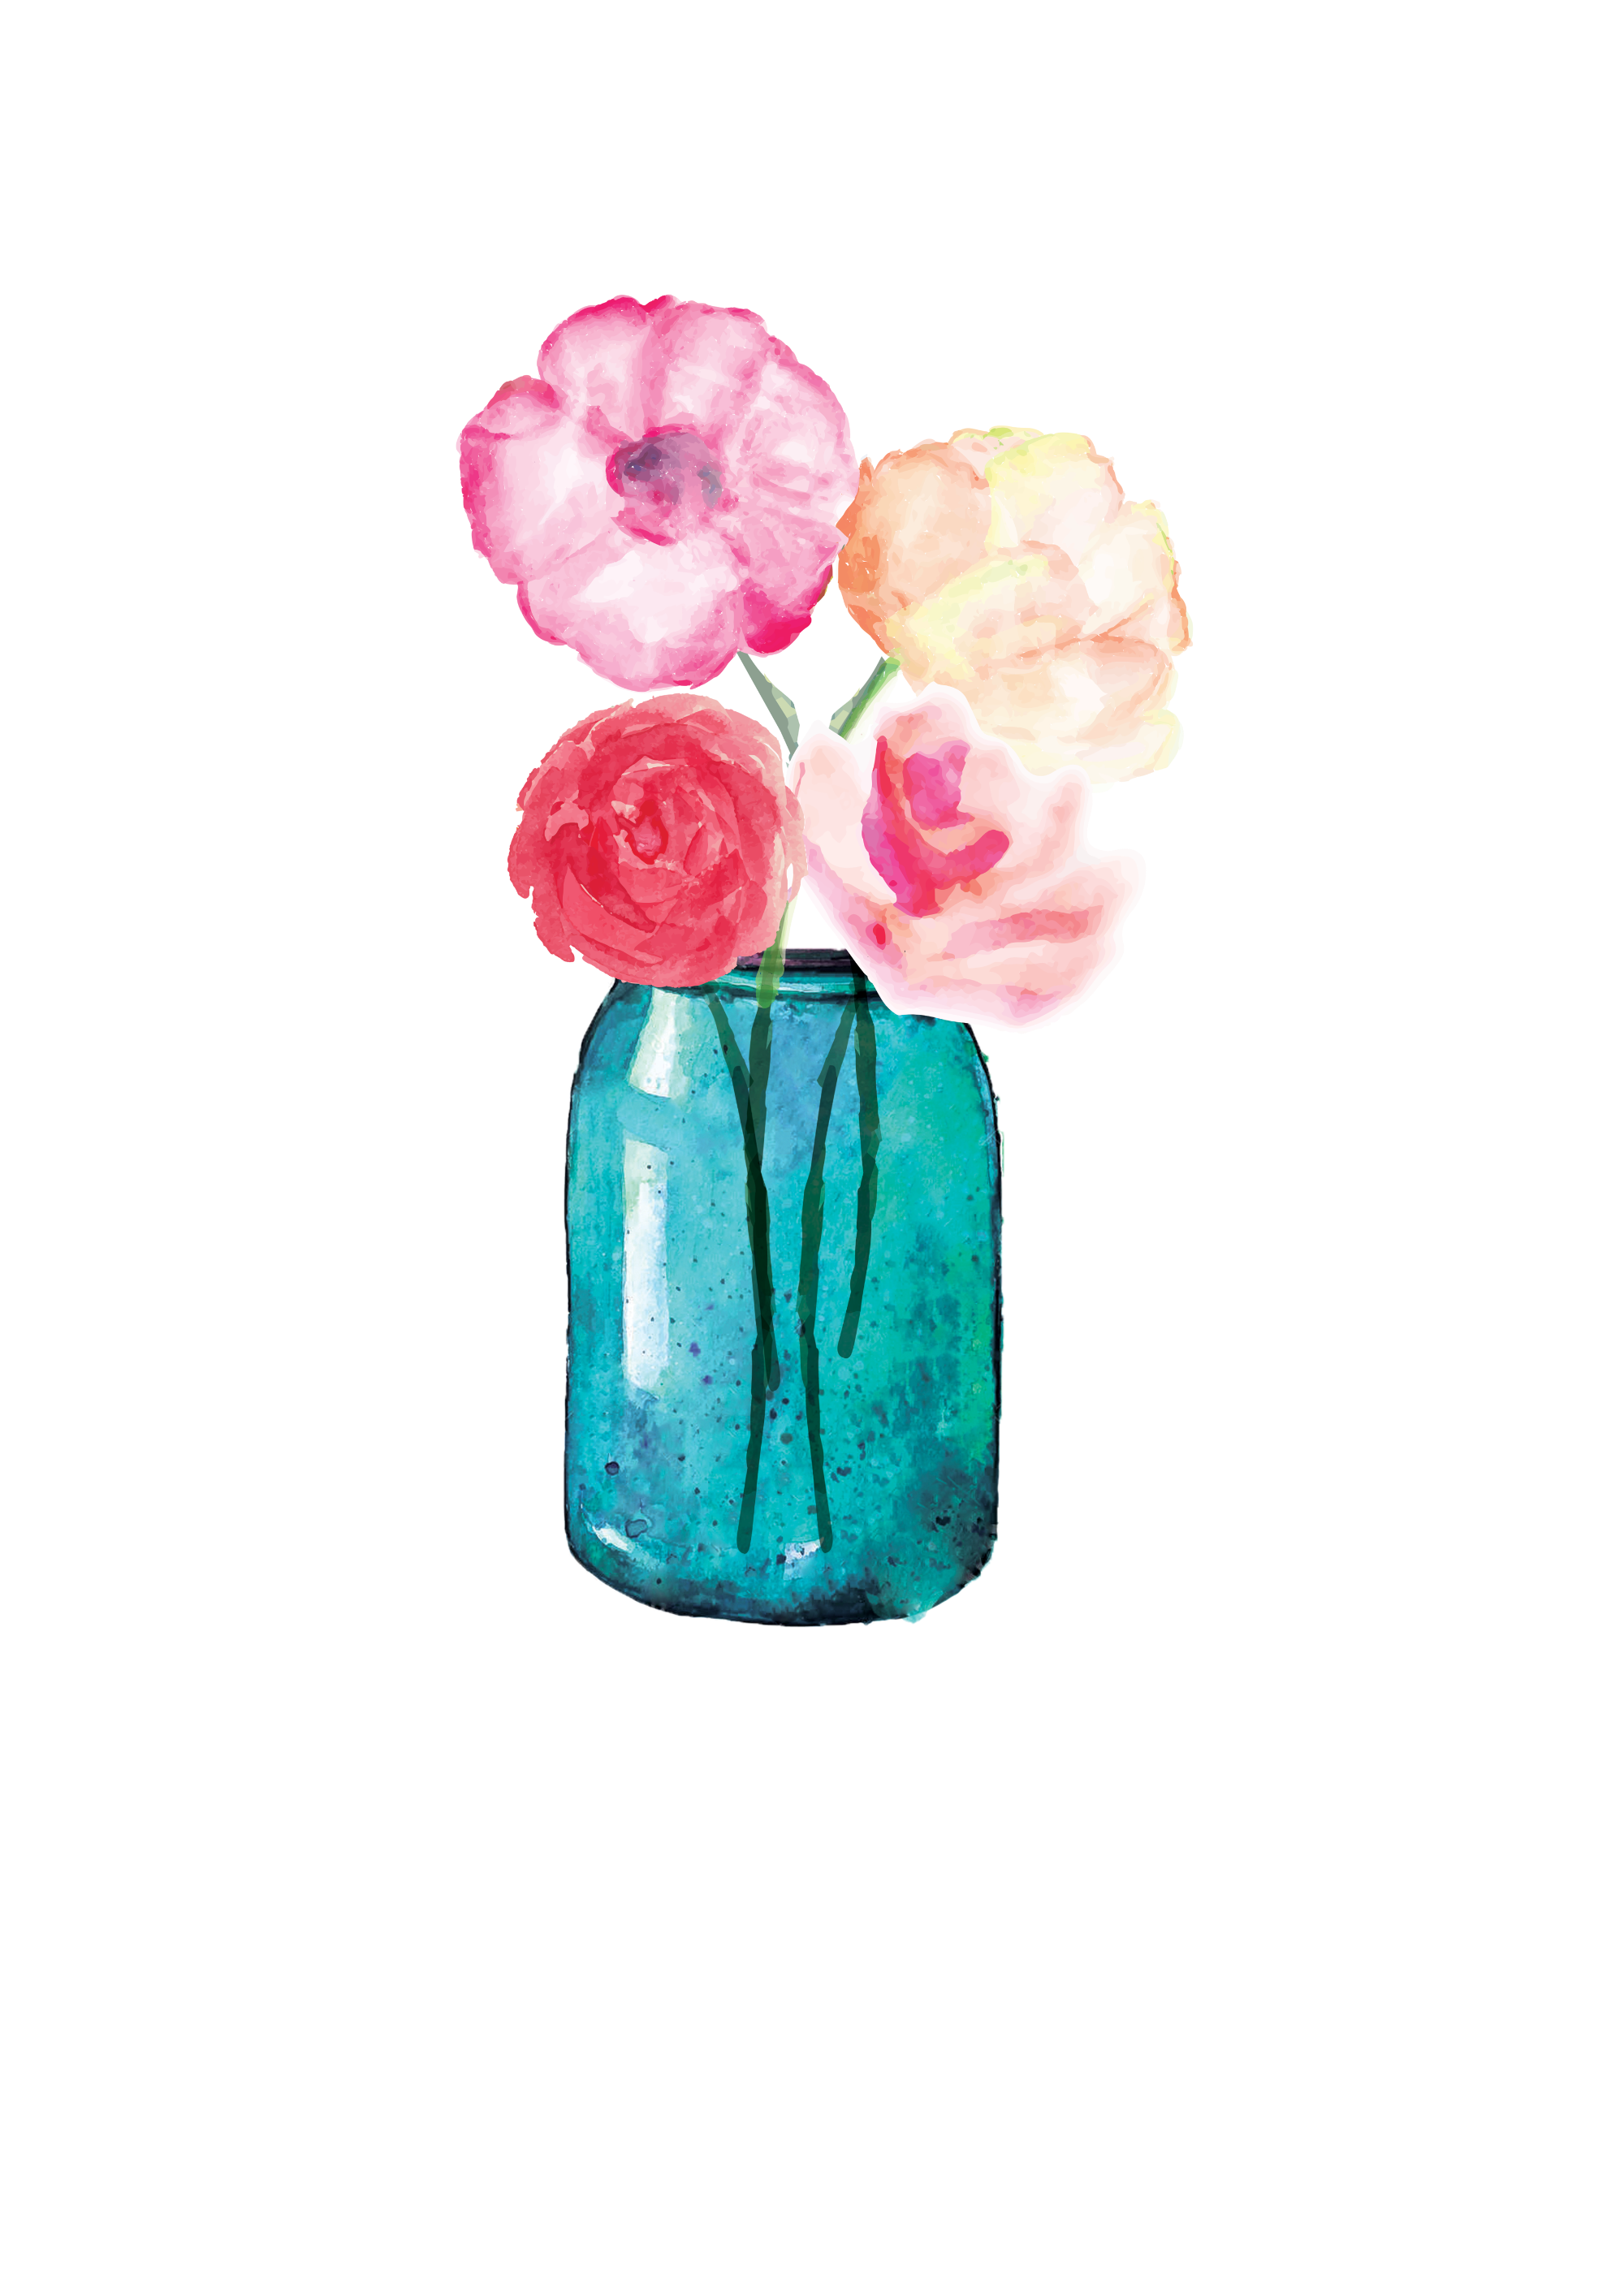 Mason jar with flower clipart banner Lauren Baxter : Flowers in a Mason Jar | Watercolor | Pinterest ... banner